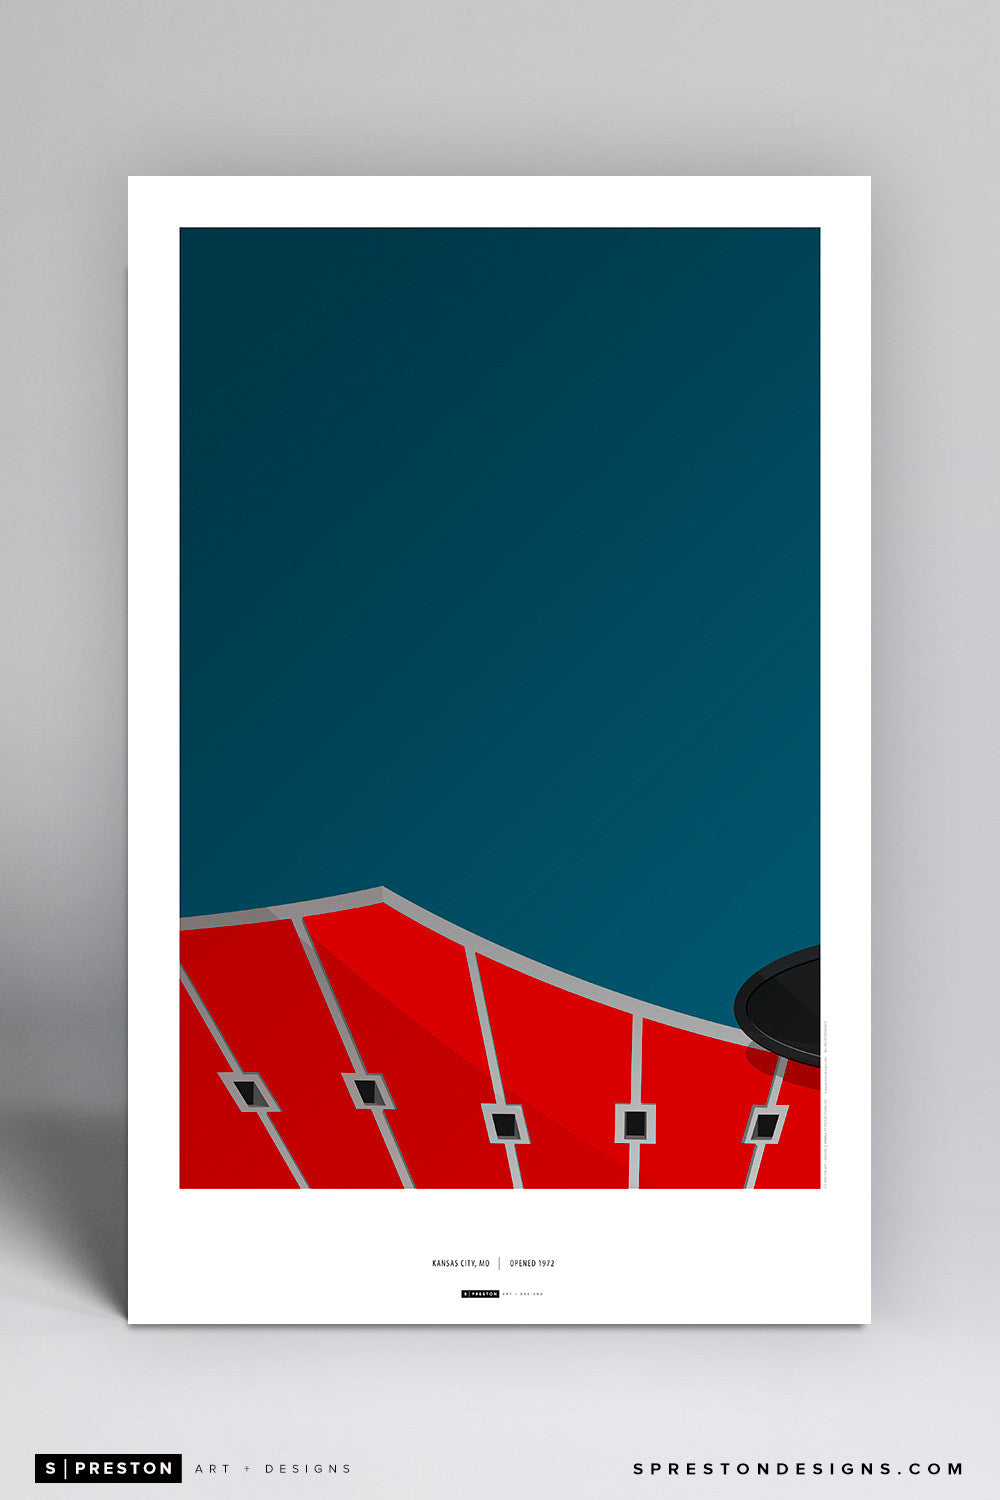 Minimalist Arrowhead Stadium Art Poster Kansas City Chiefs - S. Preston